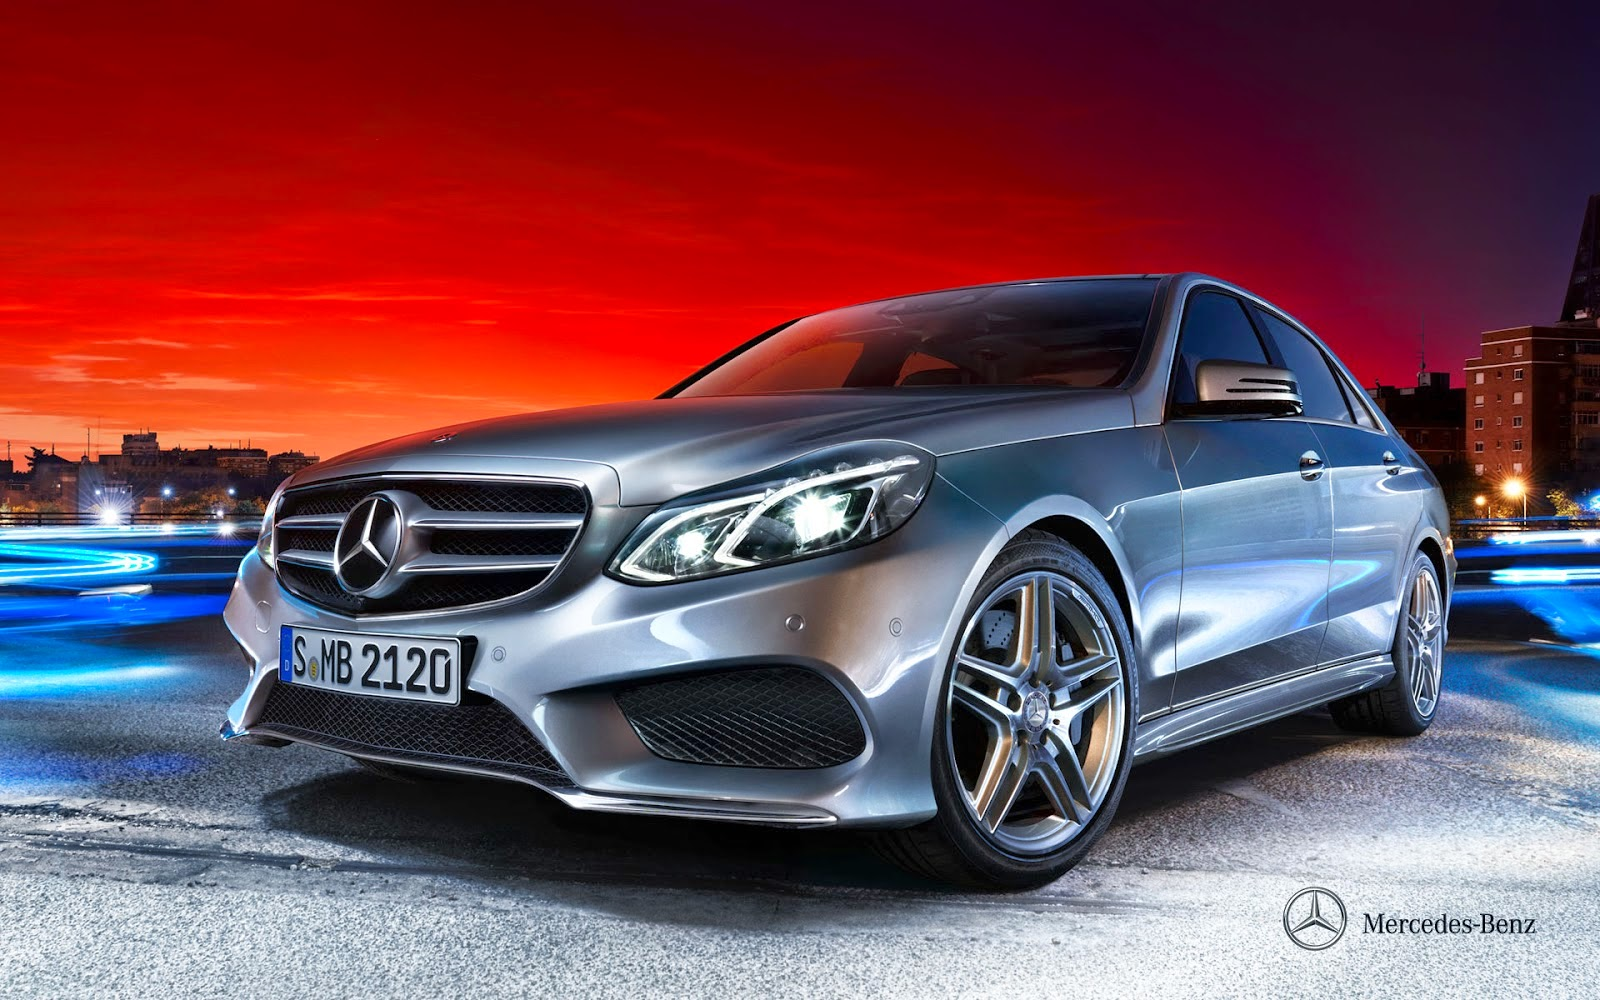 2014 Mercedes Benz E Class Wallpaper Car Reviews